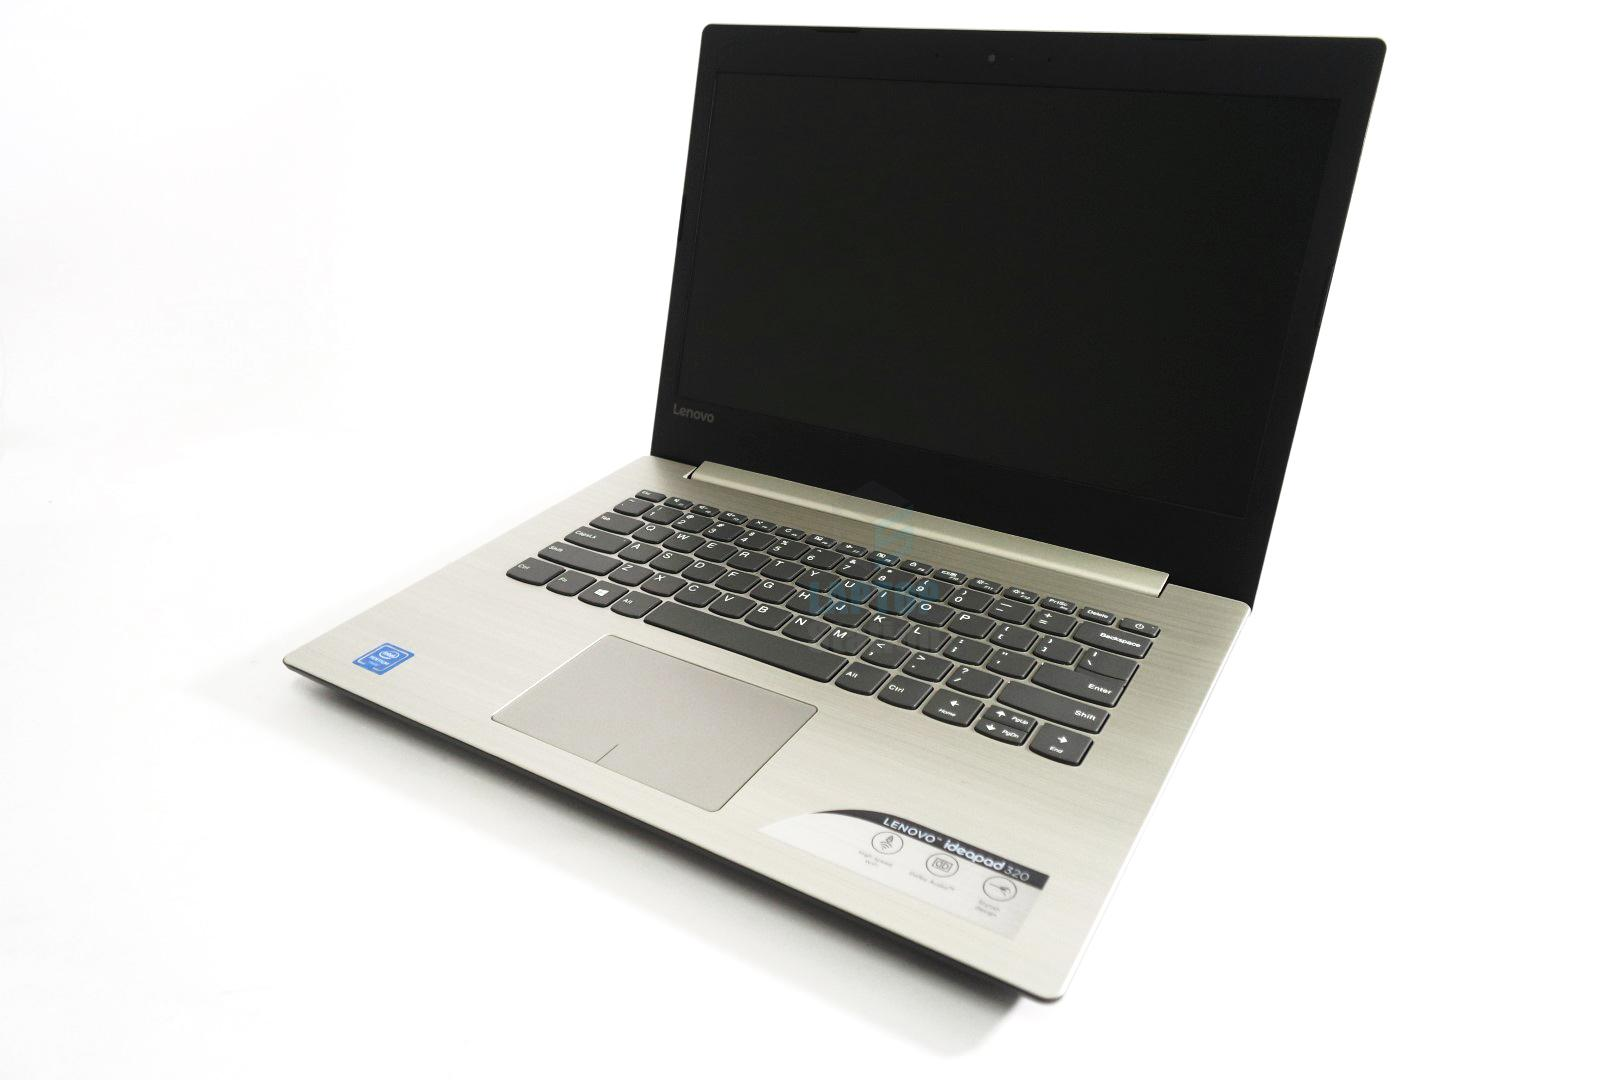 Laptops for sale - Laptop Computers prices, brands & specs in